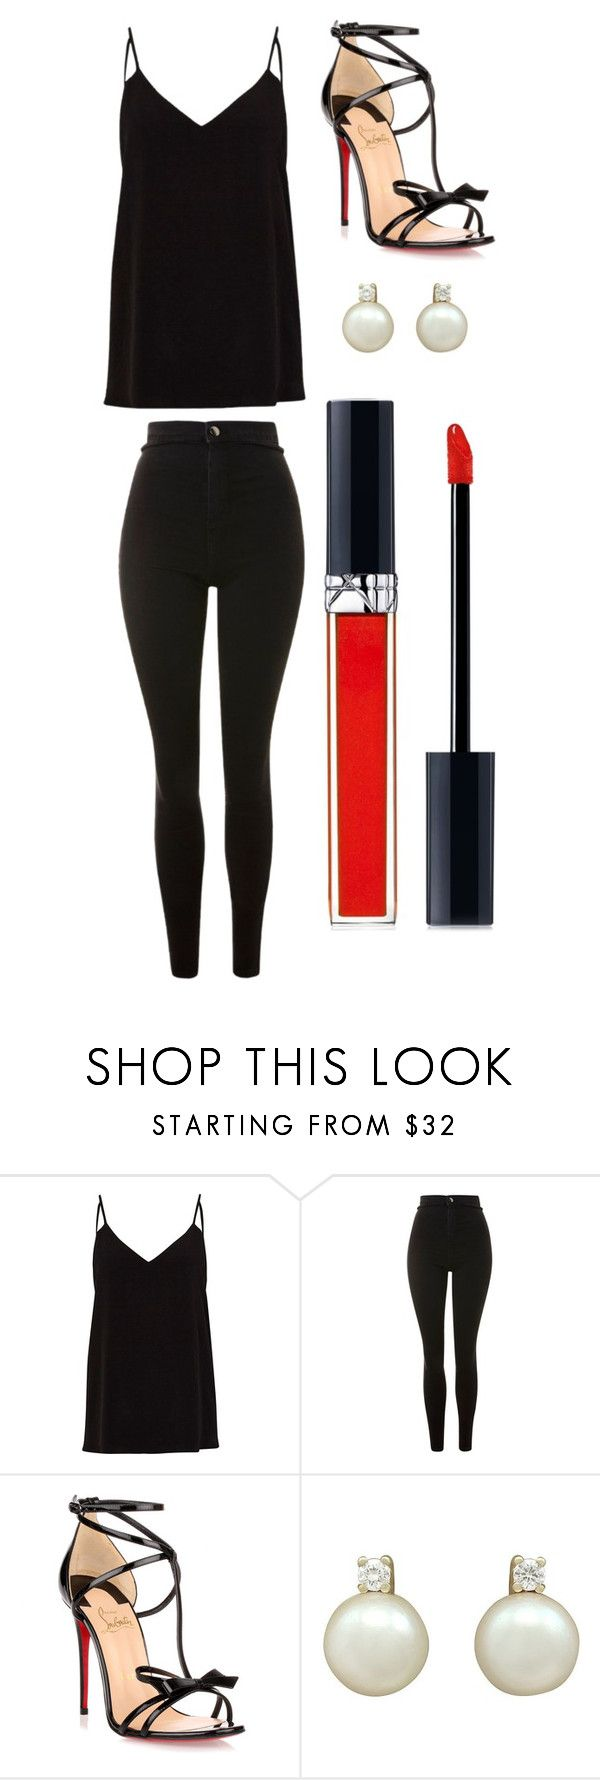 """""""Sans titre #10509"""" by merveille67120 ❤ liked on Polyvore featuring River Island, Topshop, Christian Louboutin and Christian Dior"""